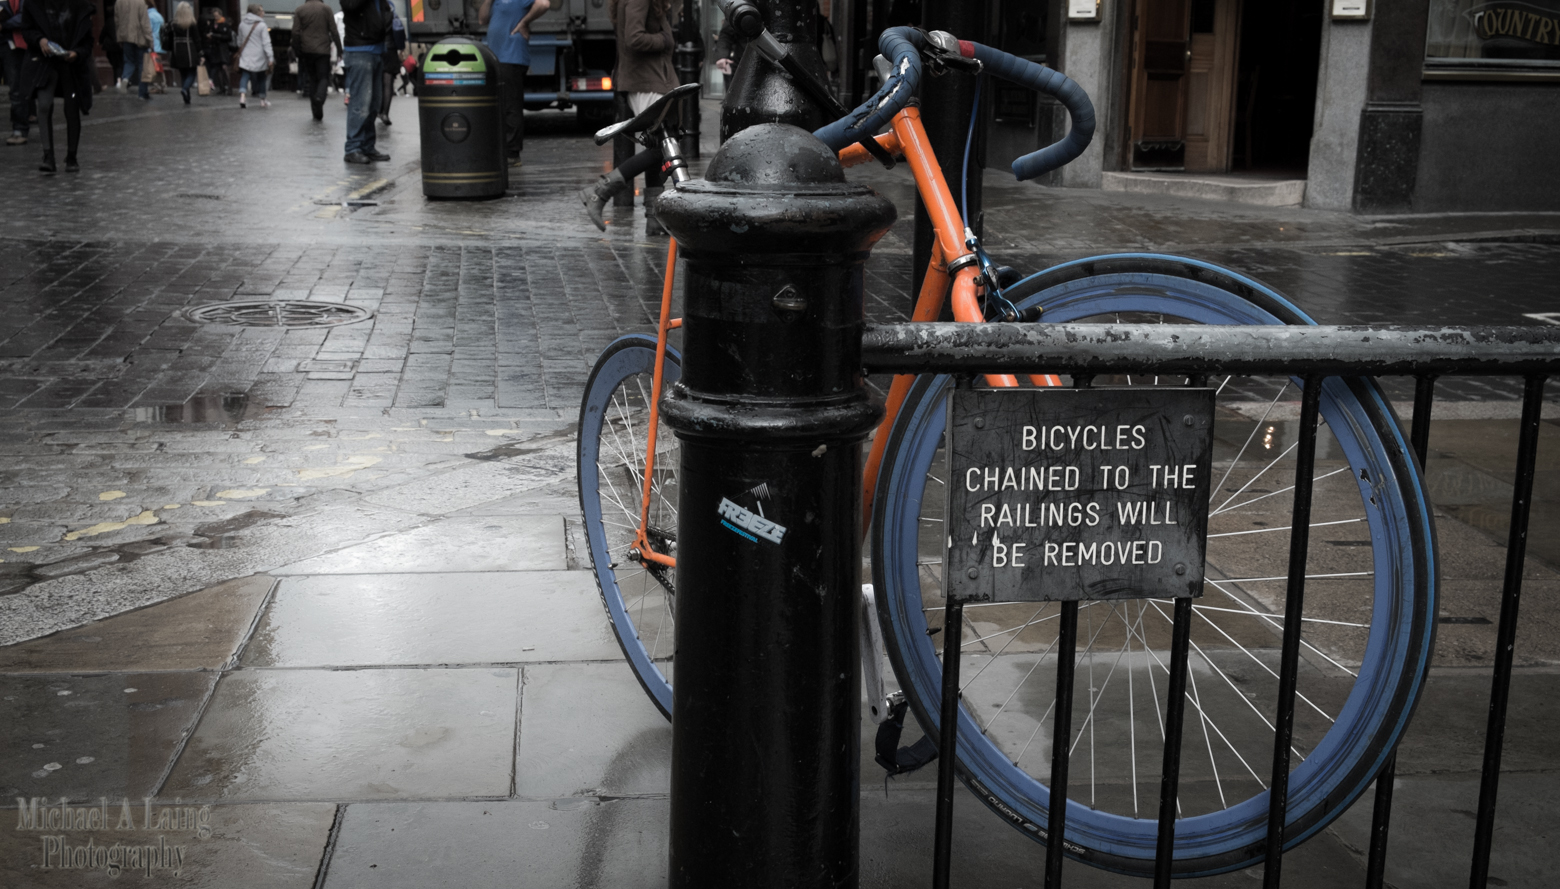 Walking around London and this image stood out for me.